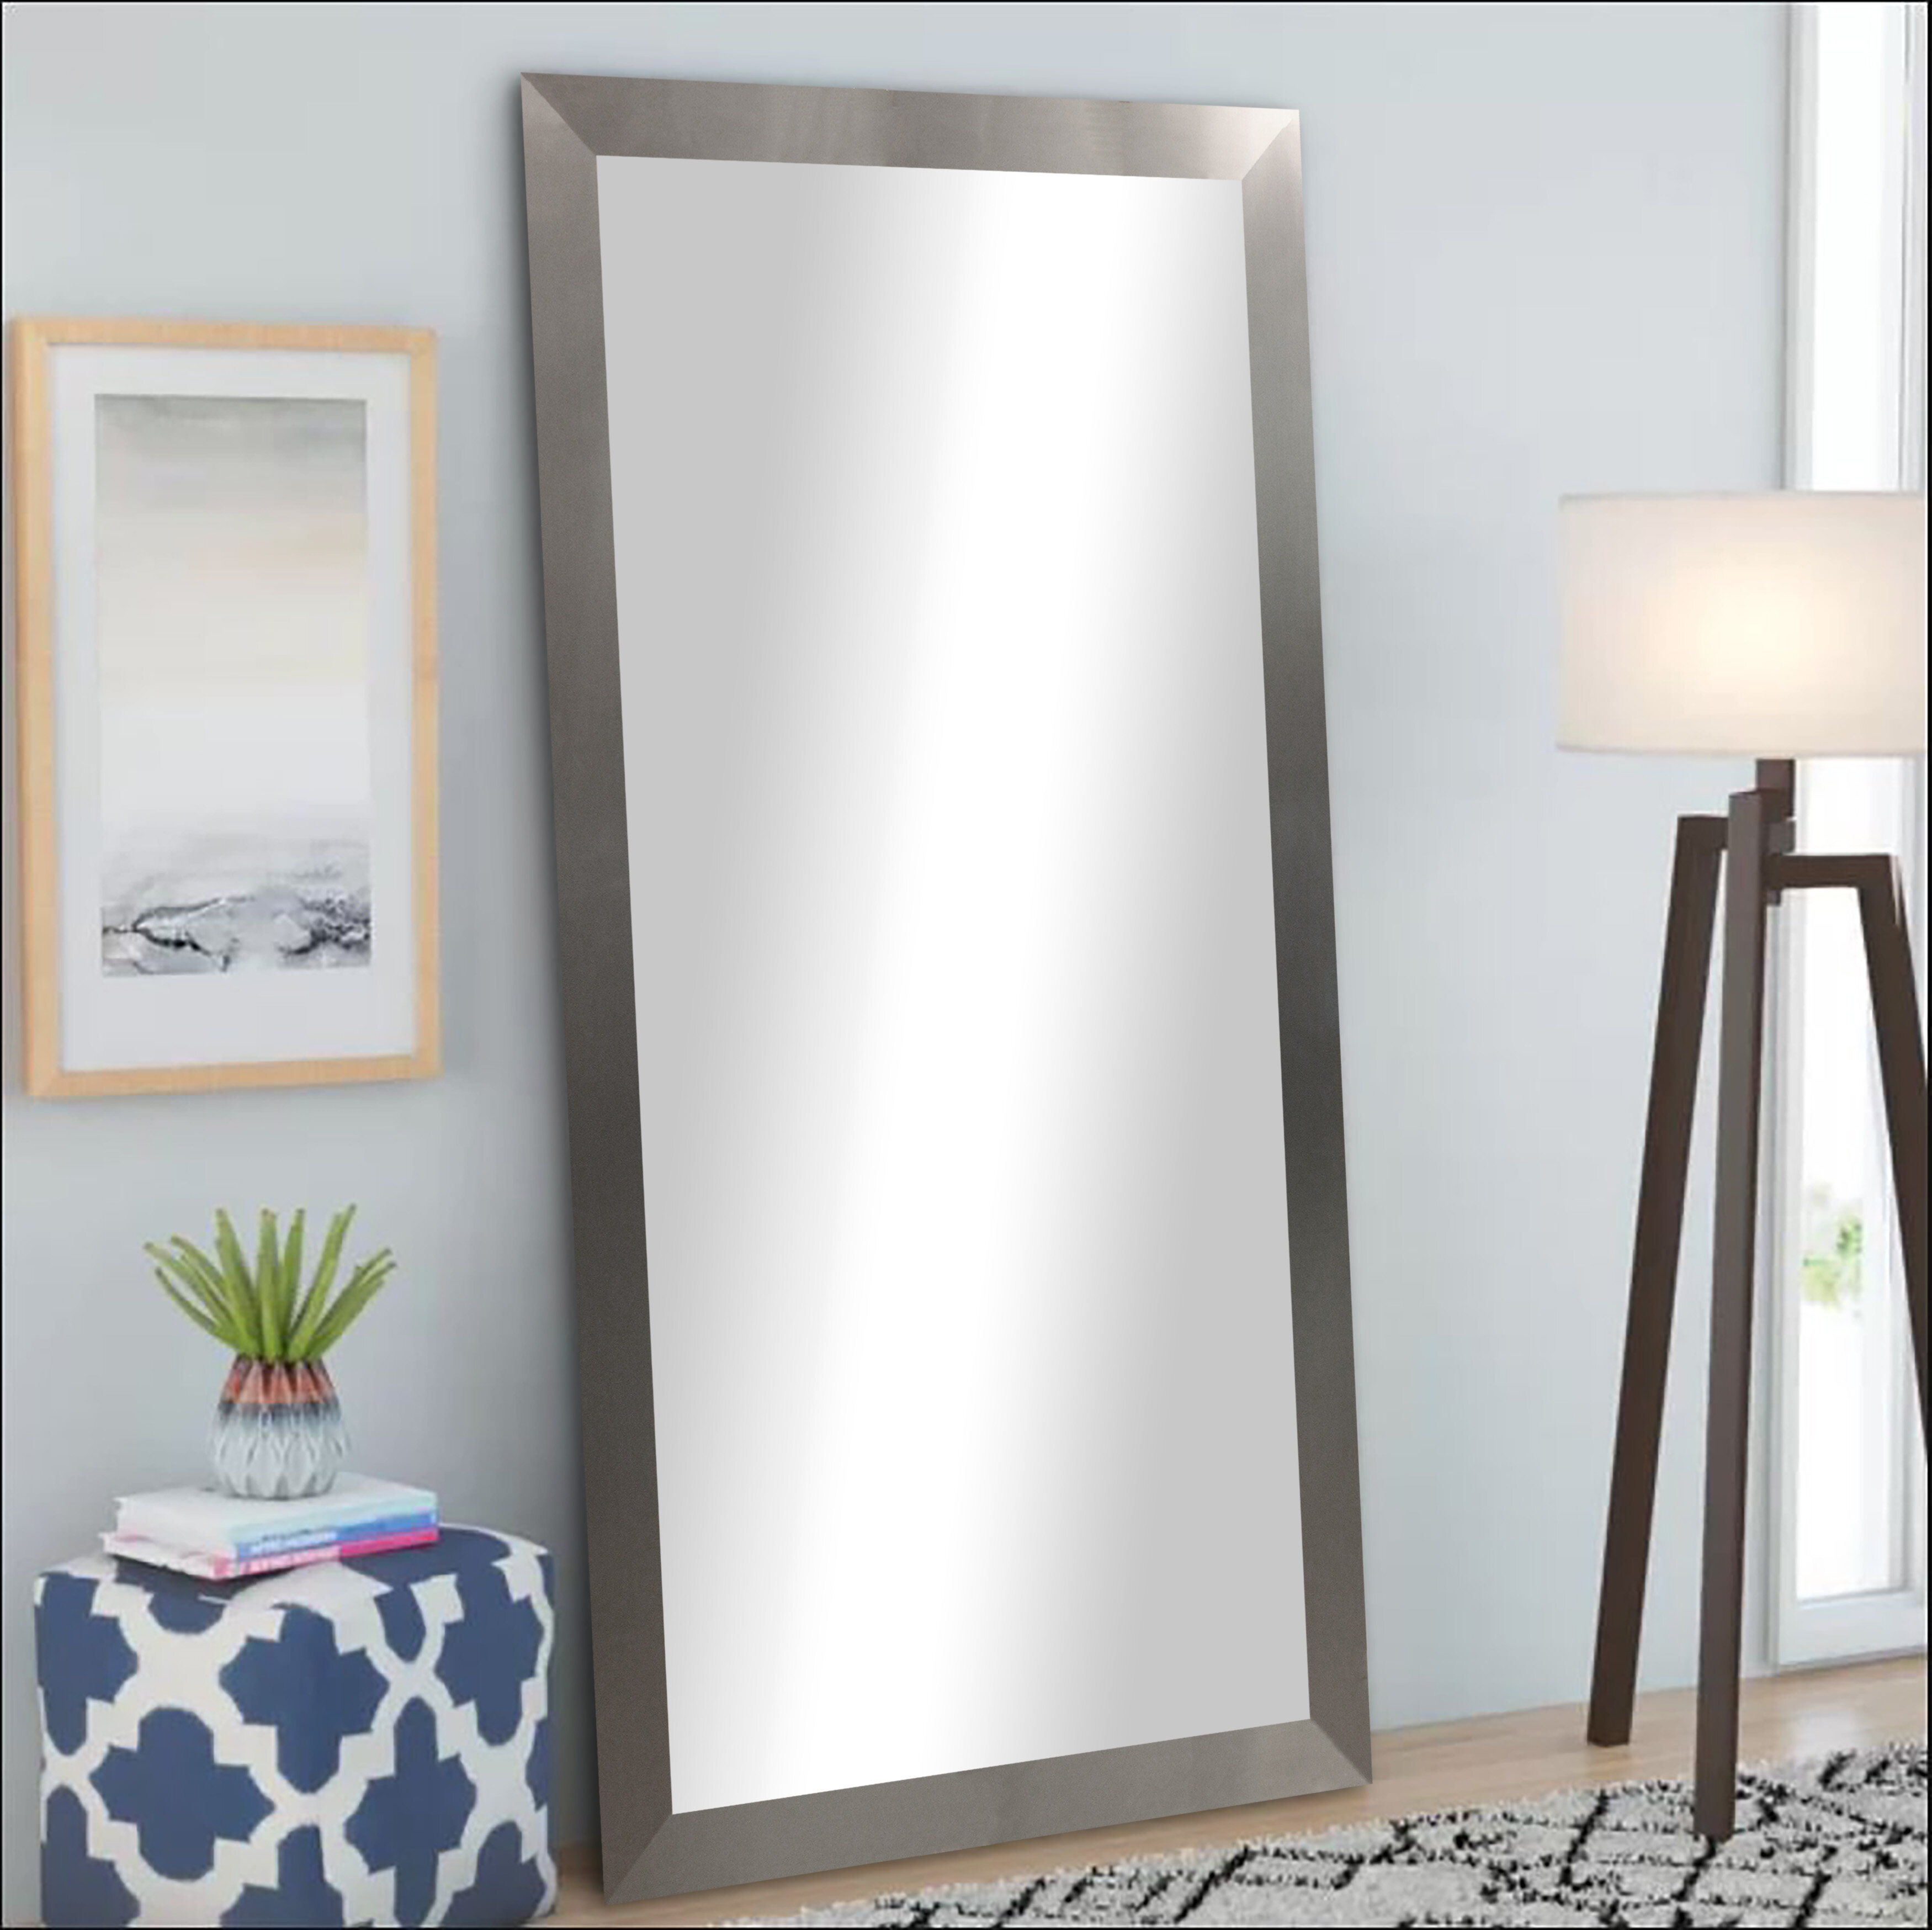 Brayden Studio Leaning Mirror & Reviews | Wayfair With Regard To Leaning Mirrors (View 11 of 30)